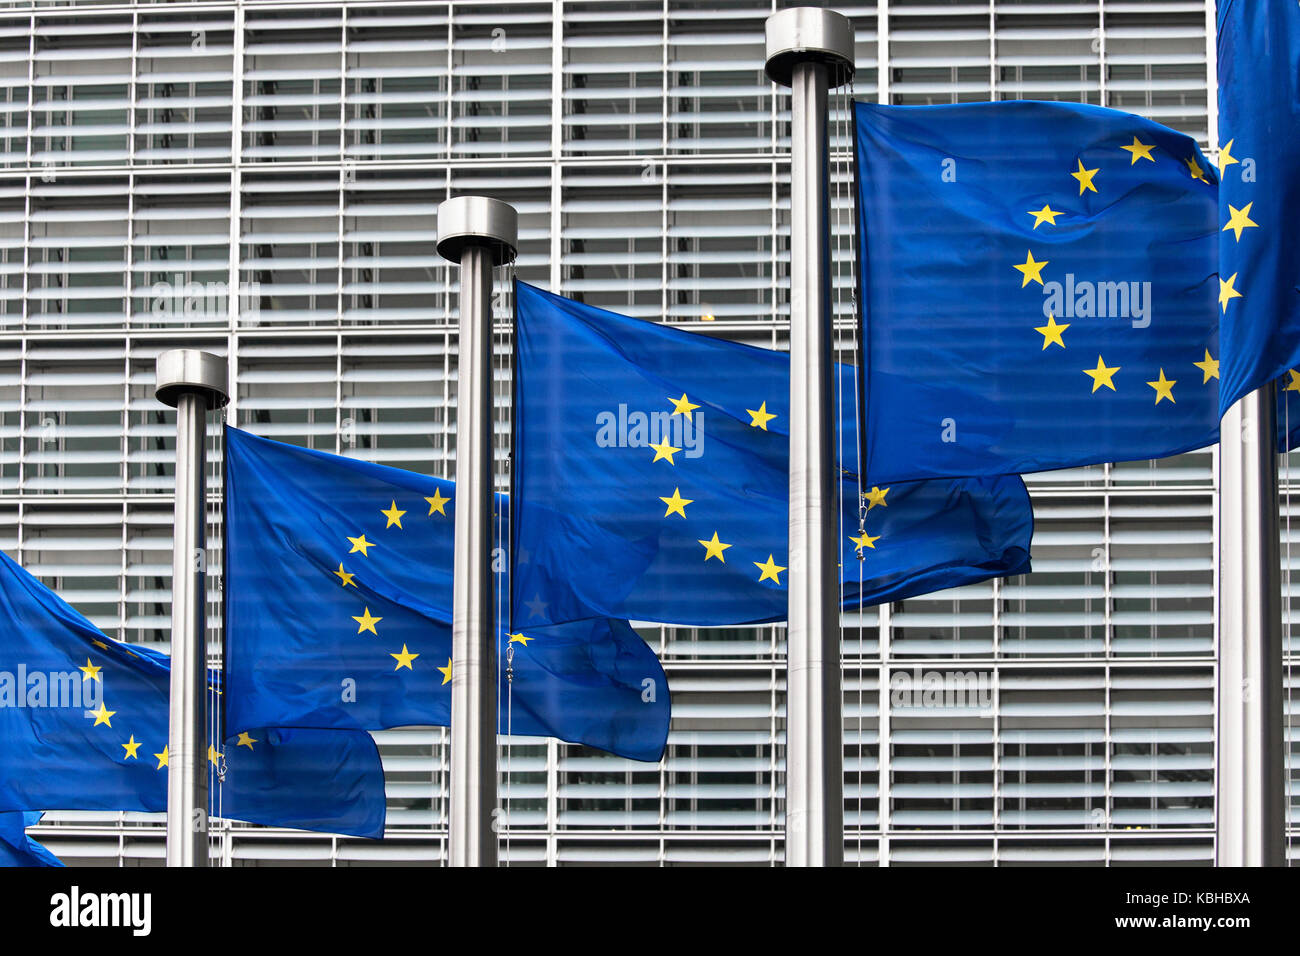 Flags of the European Union in front of the Berlaymont building in Brussels, Belgium. Stock Photo